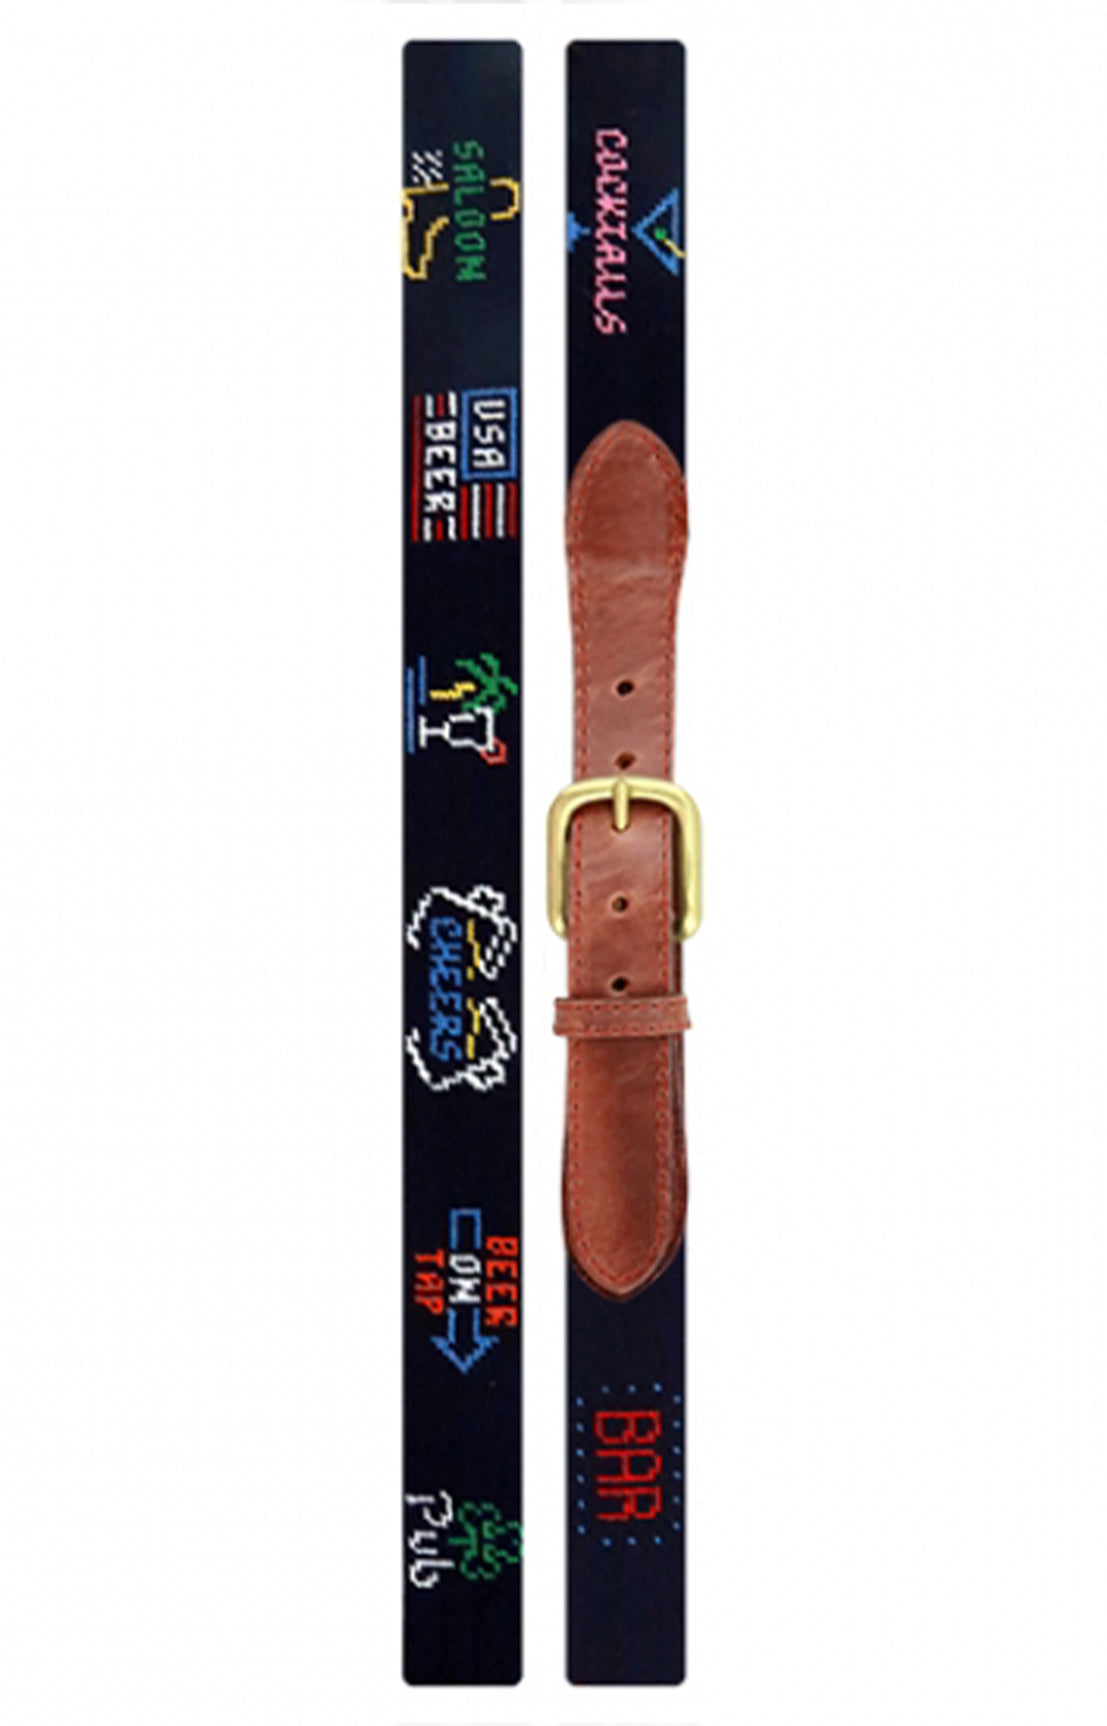 LAST CALL NEEDLEPOINT BELT - MIDNIGHT